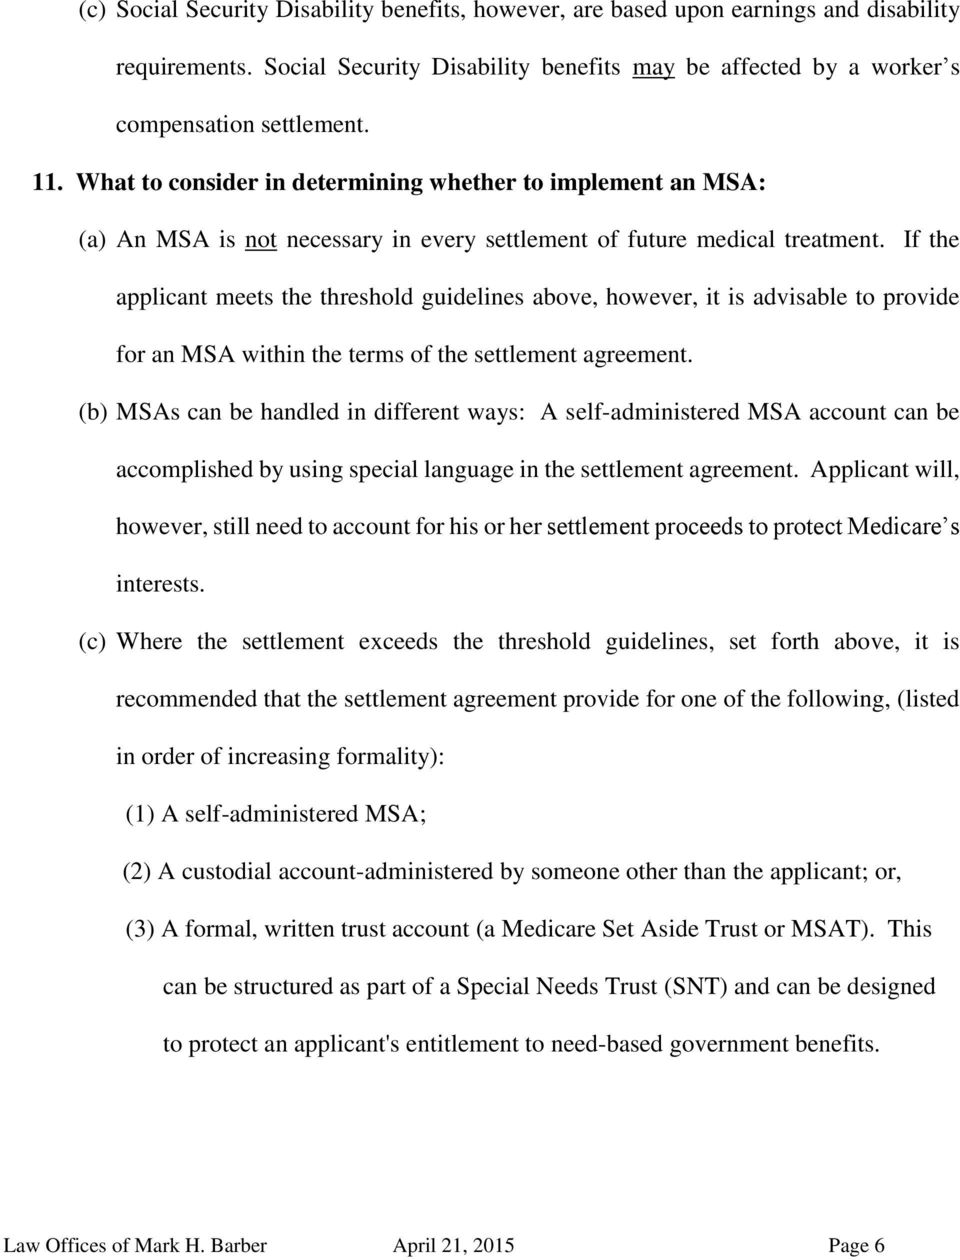 If the applicant meets the threshold guidelines above, however, it is advisable to provide for an MSA within the terms of the settlement agreement.